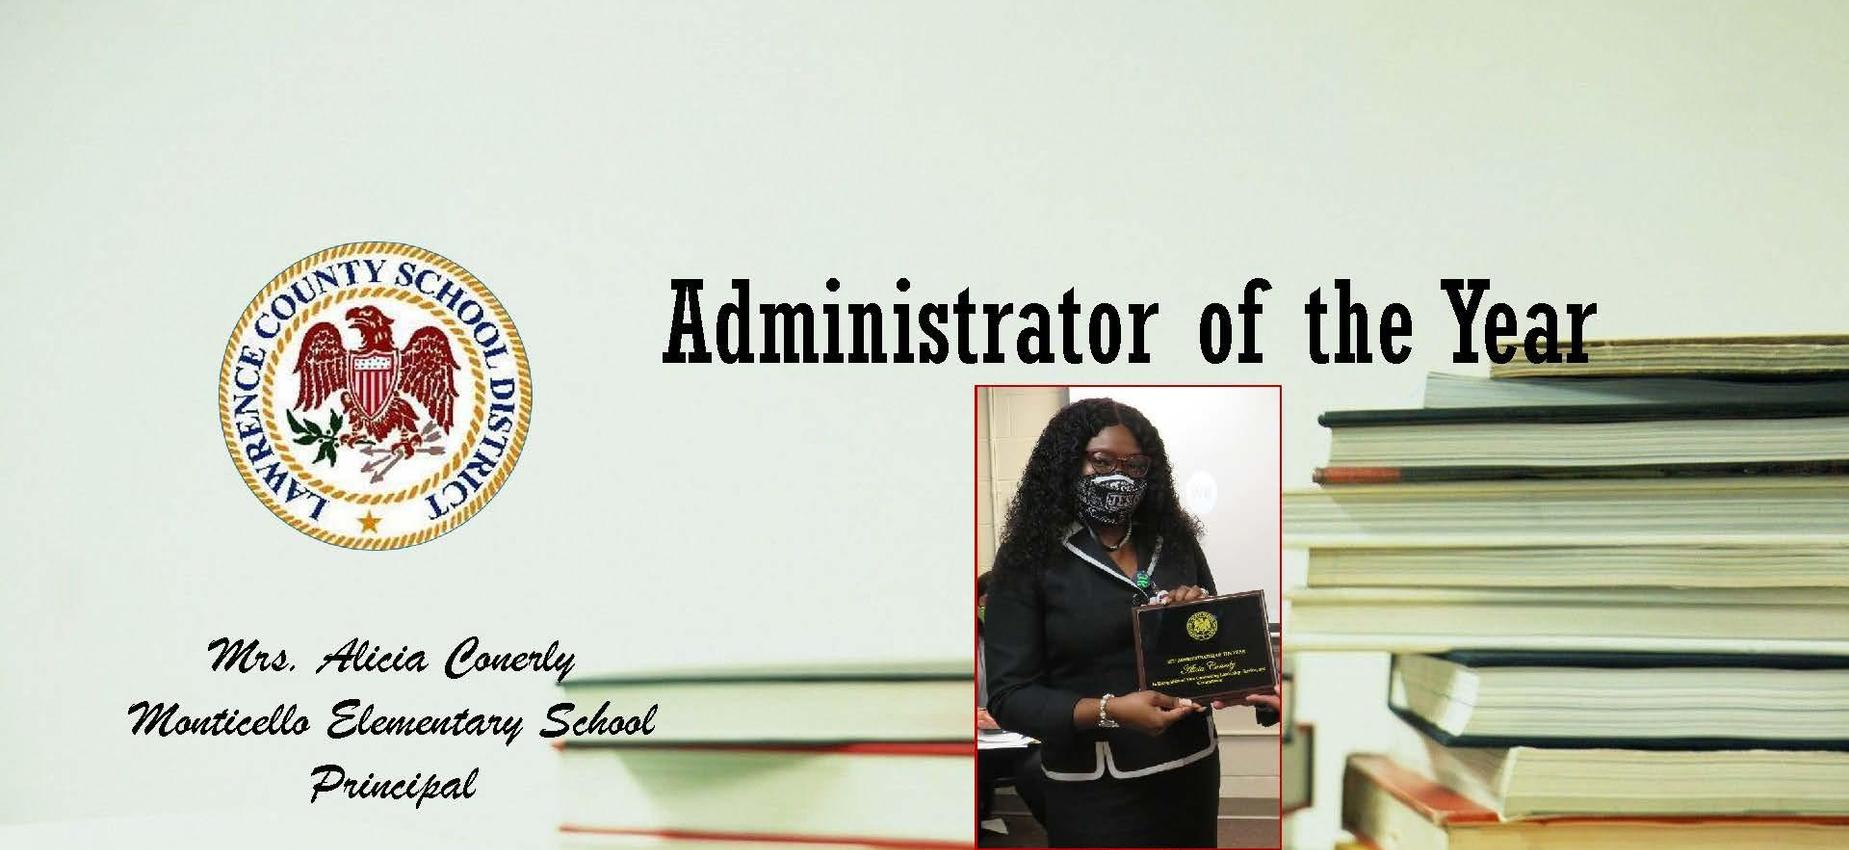 District Administrator of the Year 2020- Mrs. Alicia Conerly